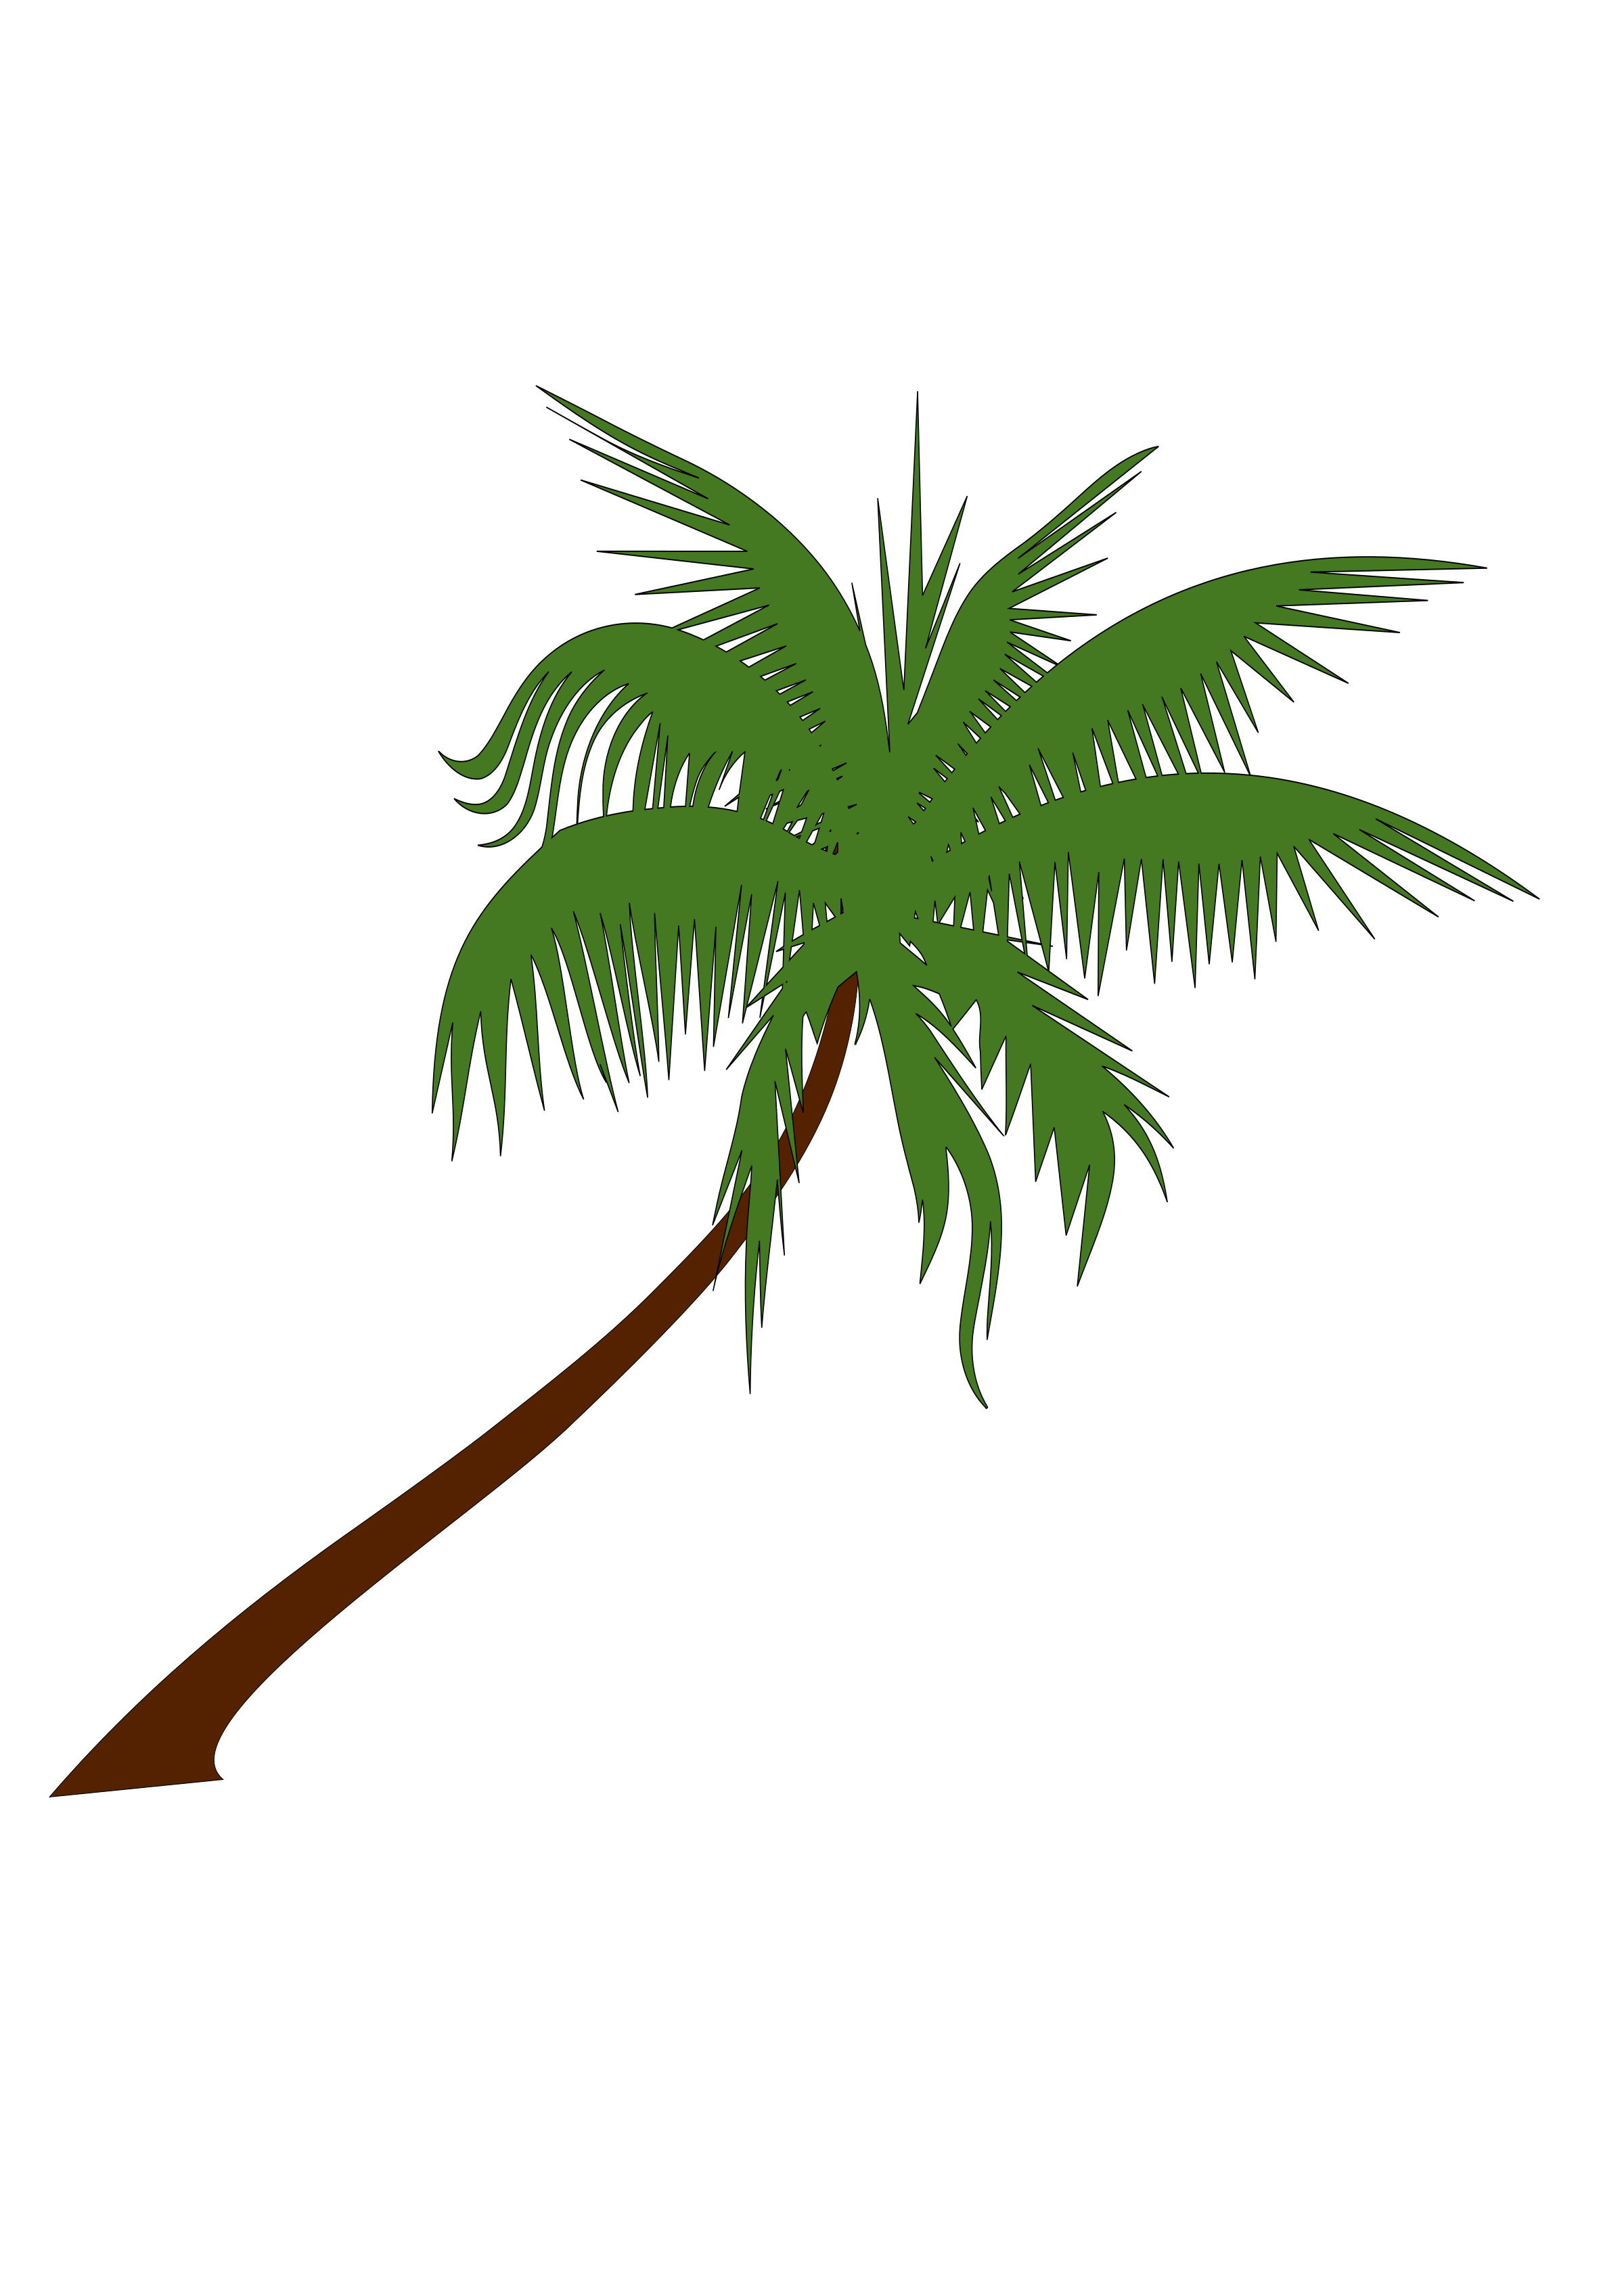 Palm tree clipart free royalty free stock 10 Coconut Tree Png Frees That You Can Download To clipart free image royalty free stock